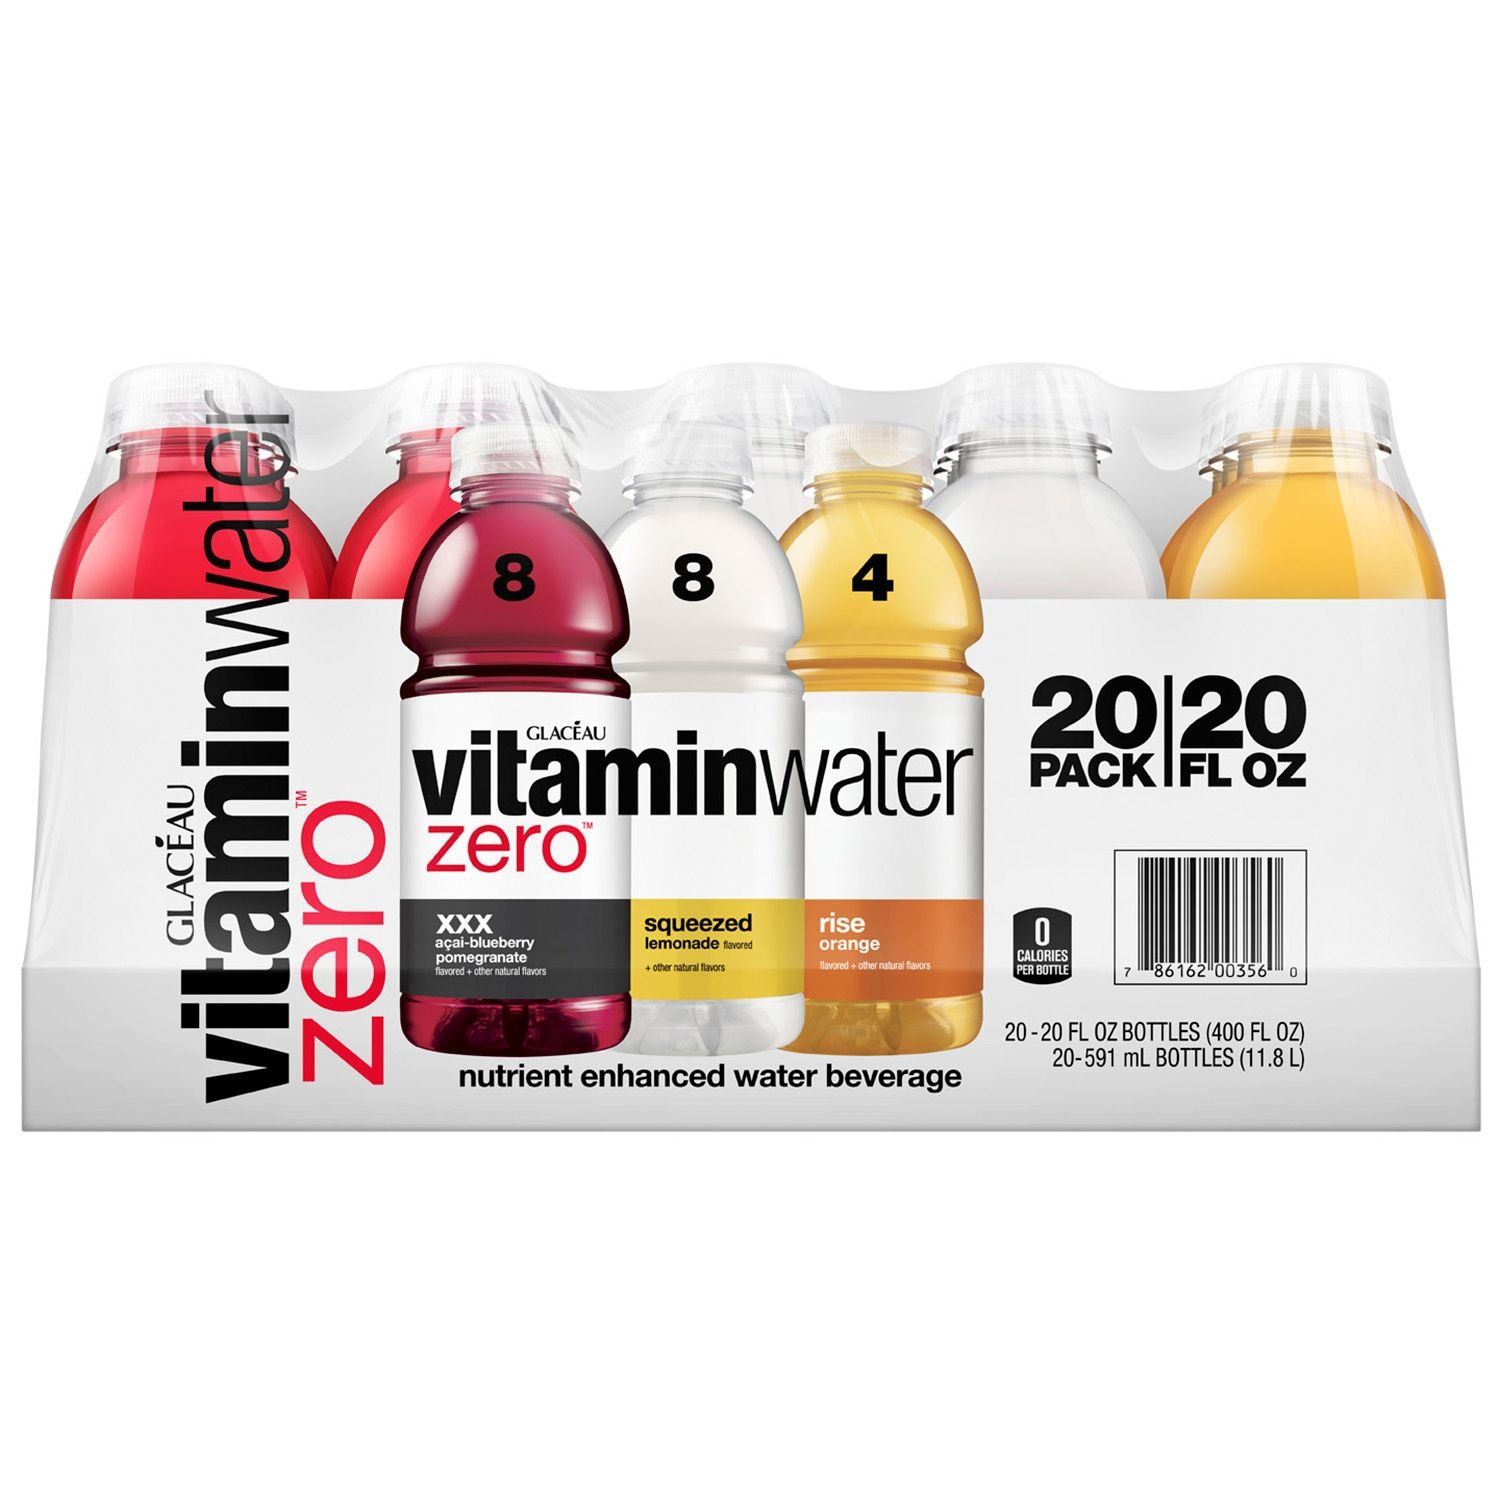 Glaceau Vitamin Water Zero Variety Pack, 20 Count (400 Fluid Ounce) by Glaceau